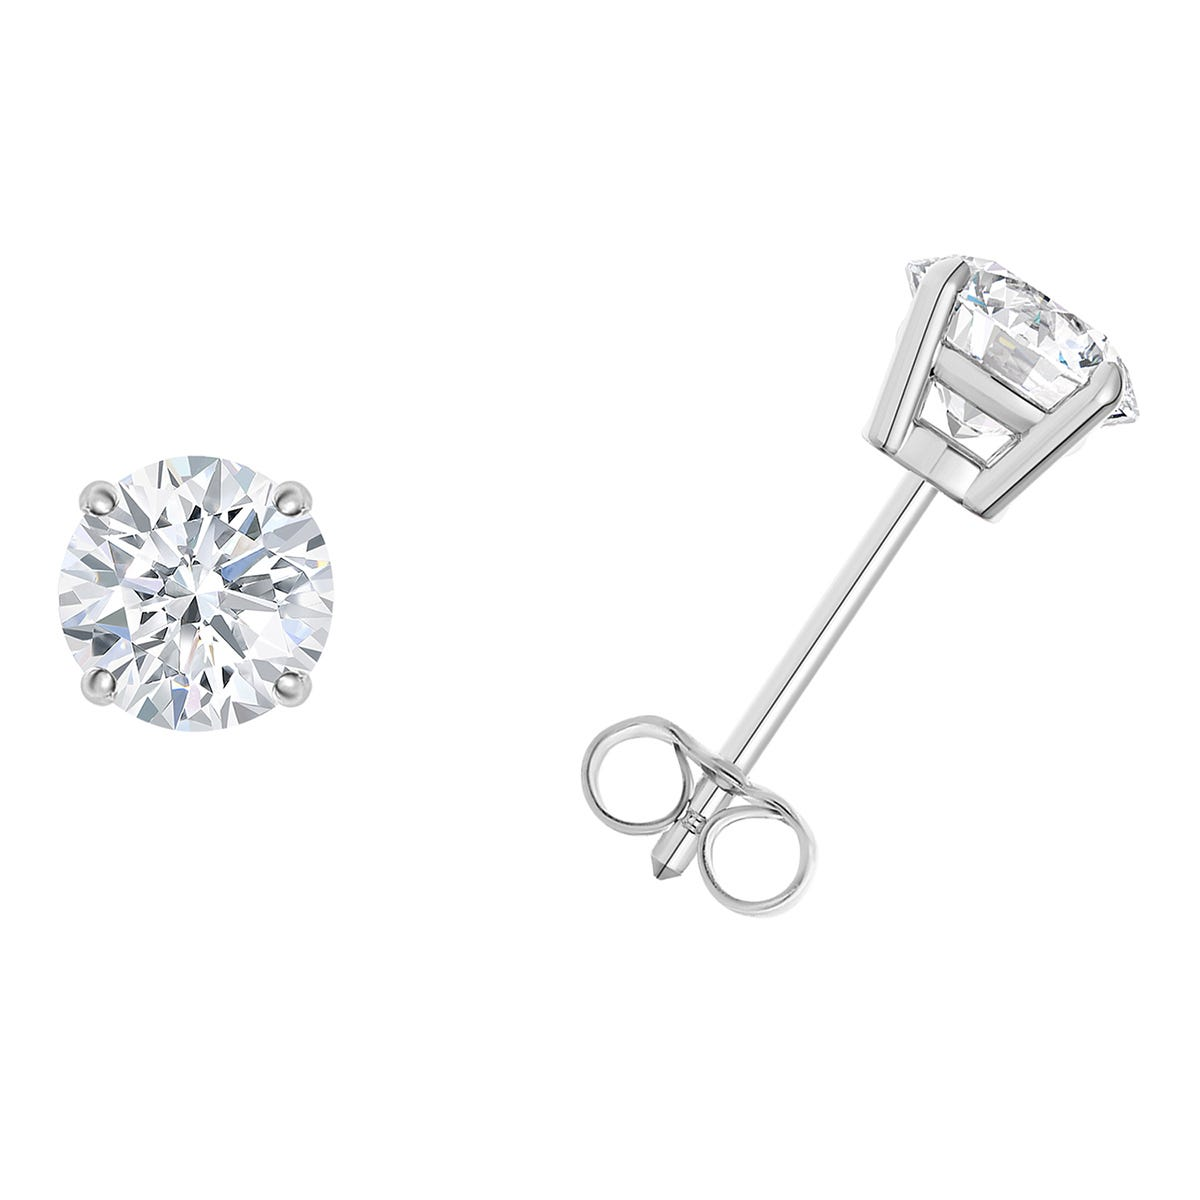 1/10 CTTW Round Diamond Solitaire Stud 4-prong Earrings in 10K White Gold (I-I2) IGI Certified